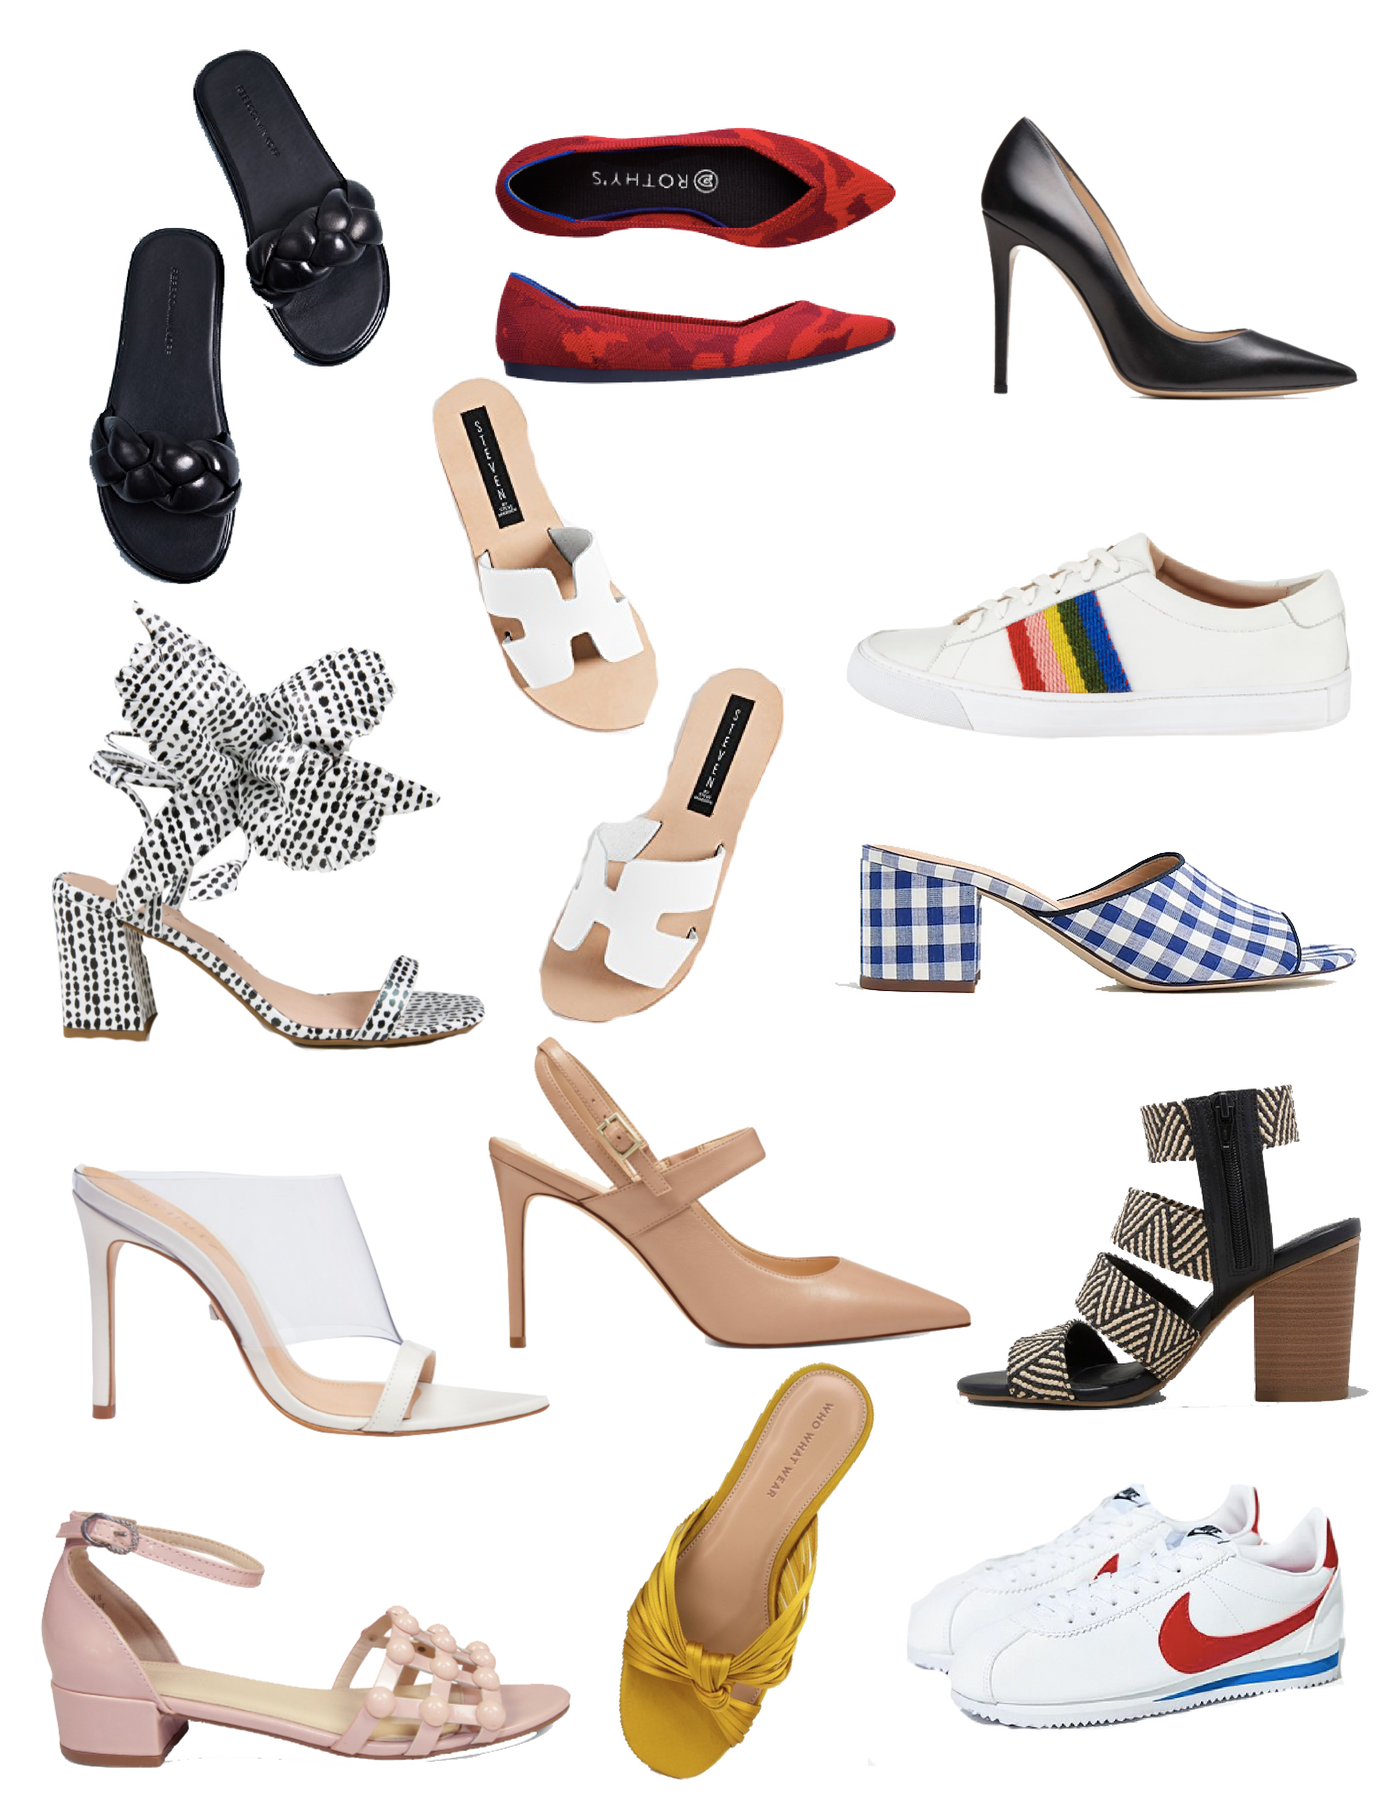 Summer Shoes List by popular Michigan fashion blog, The HSS Feed: collage image of Rebecca Minkoff Braided Slides, Rothy's Red Camo Flats, M. Gemi Heels, Cecelia New York Hibiscus Heels,Steven Greece Slides, Loeffler Randall Rainbow Sneakers, J.Crew Gingham Mules, Schutz x Adriana Lima Naked Mules, Nine West Slingbacks, Universal Thread Huarache Sandals, BURU Blush Sandals, Who What Wear Sandals, and Nike Cortez Classic Sneakers.